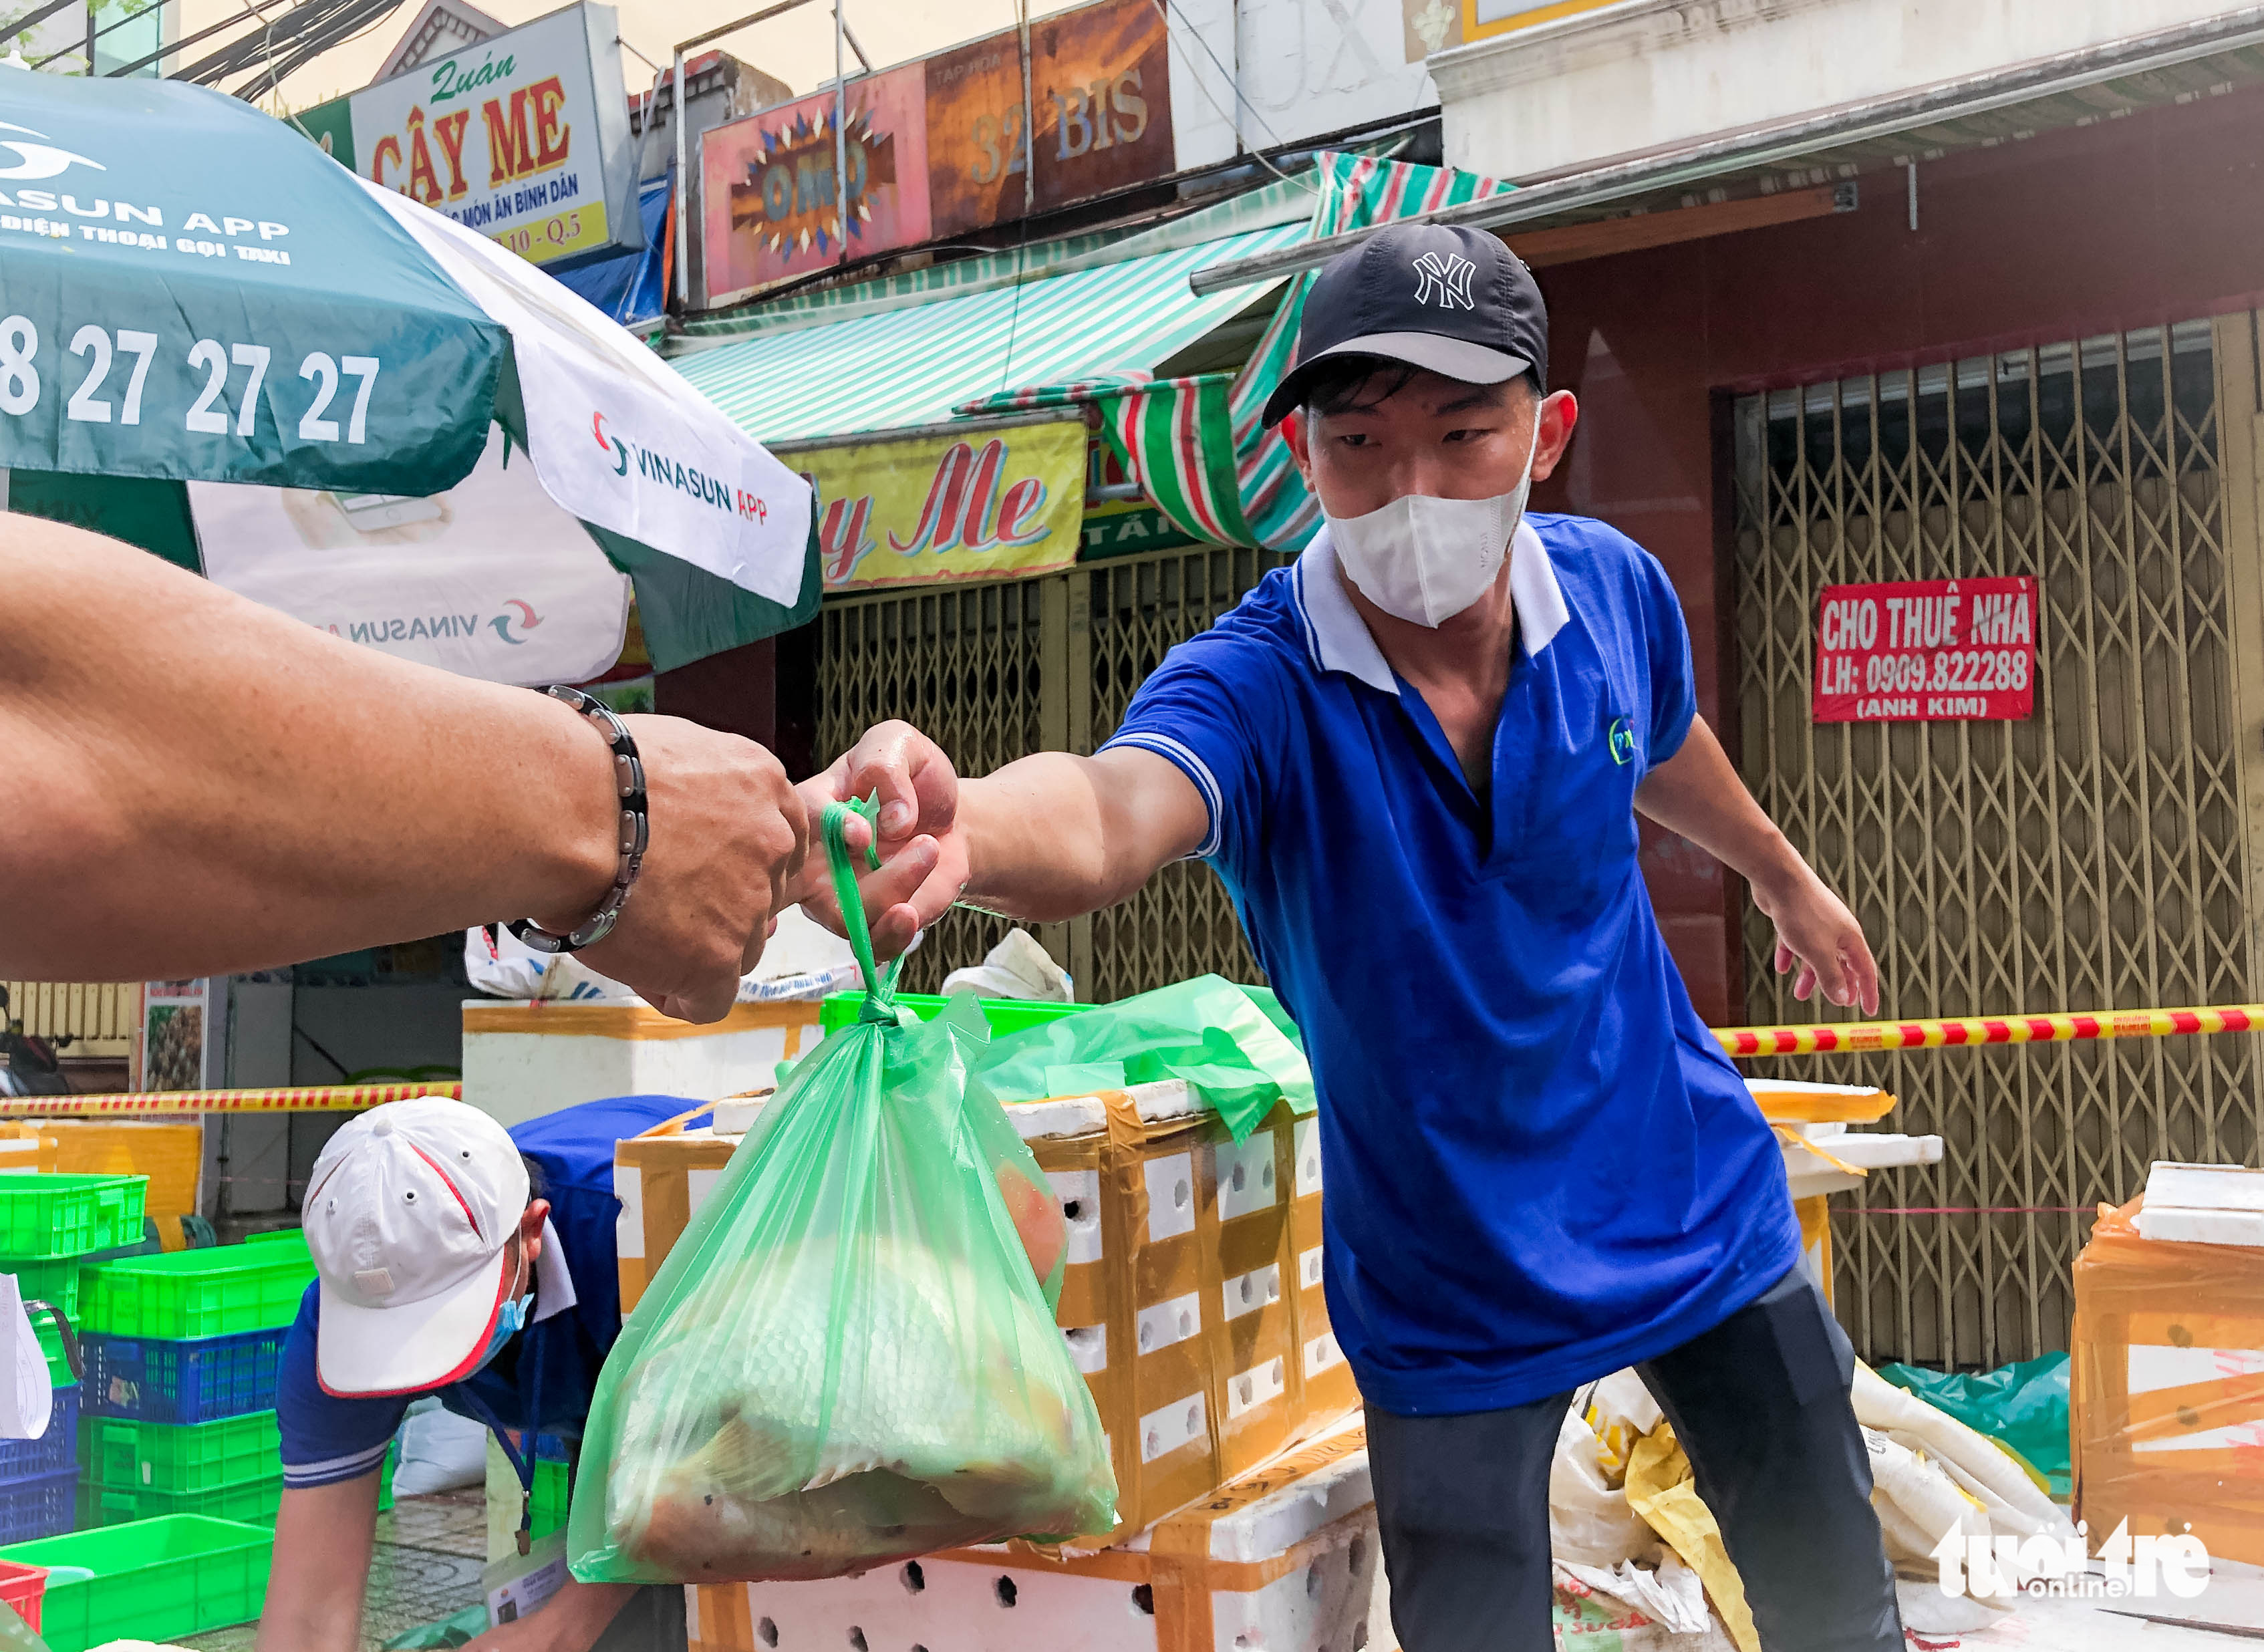 Merchants at the market must be fully vaccinated against COVID-19. Photo: Chau Tuan / Tuoi Tre